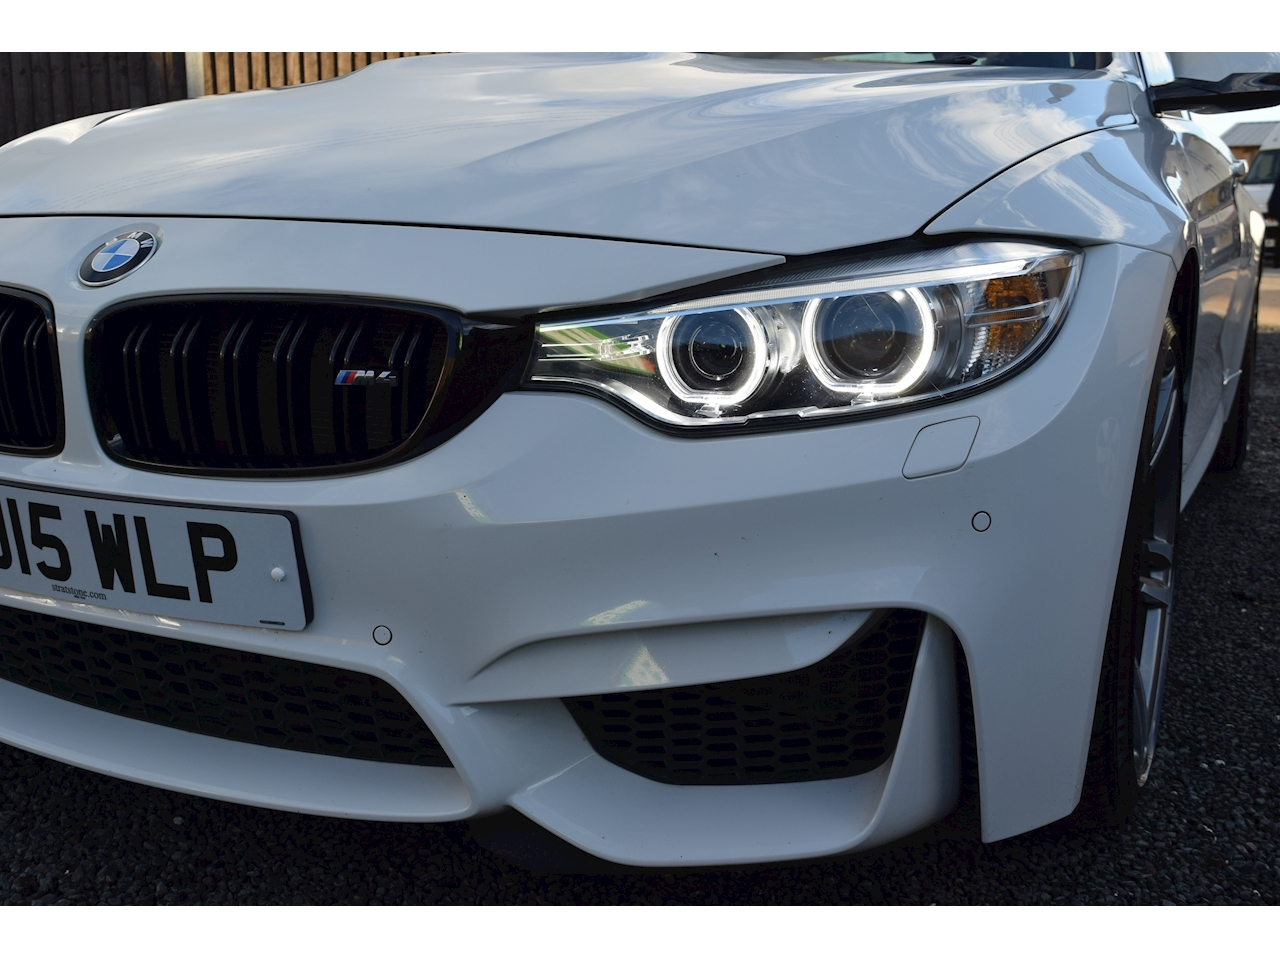 BMW M4 M4 Coupe 3.0 2dr Coupe Automatic Petrol 3.0 2dr Coupe Automatic Petrol